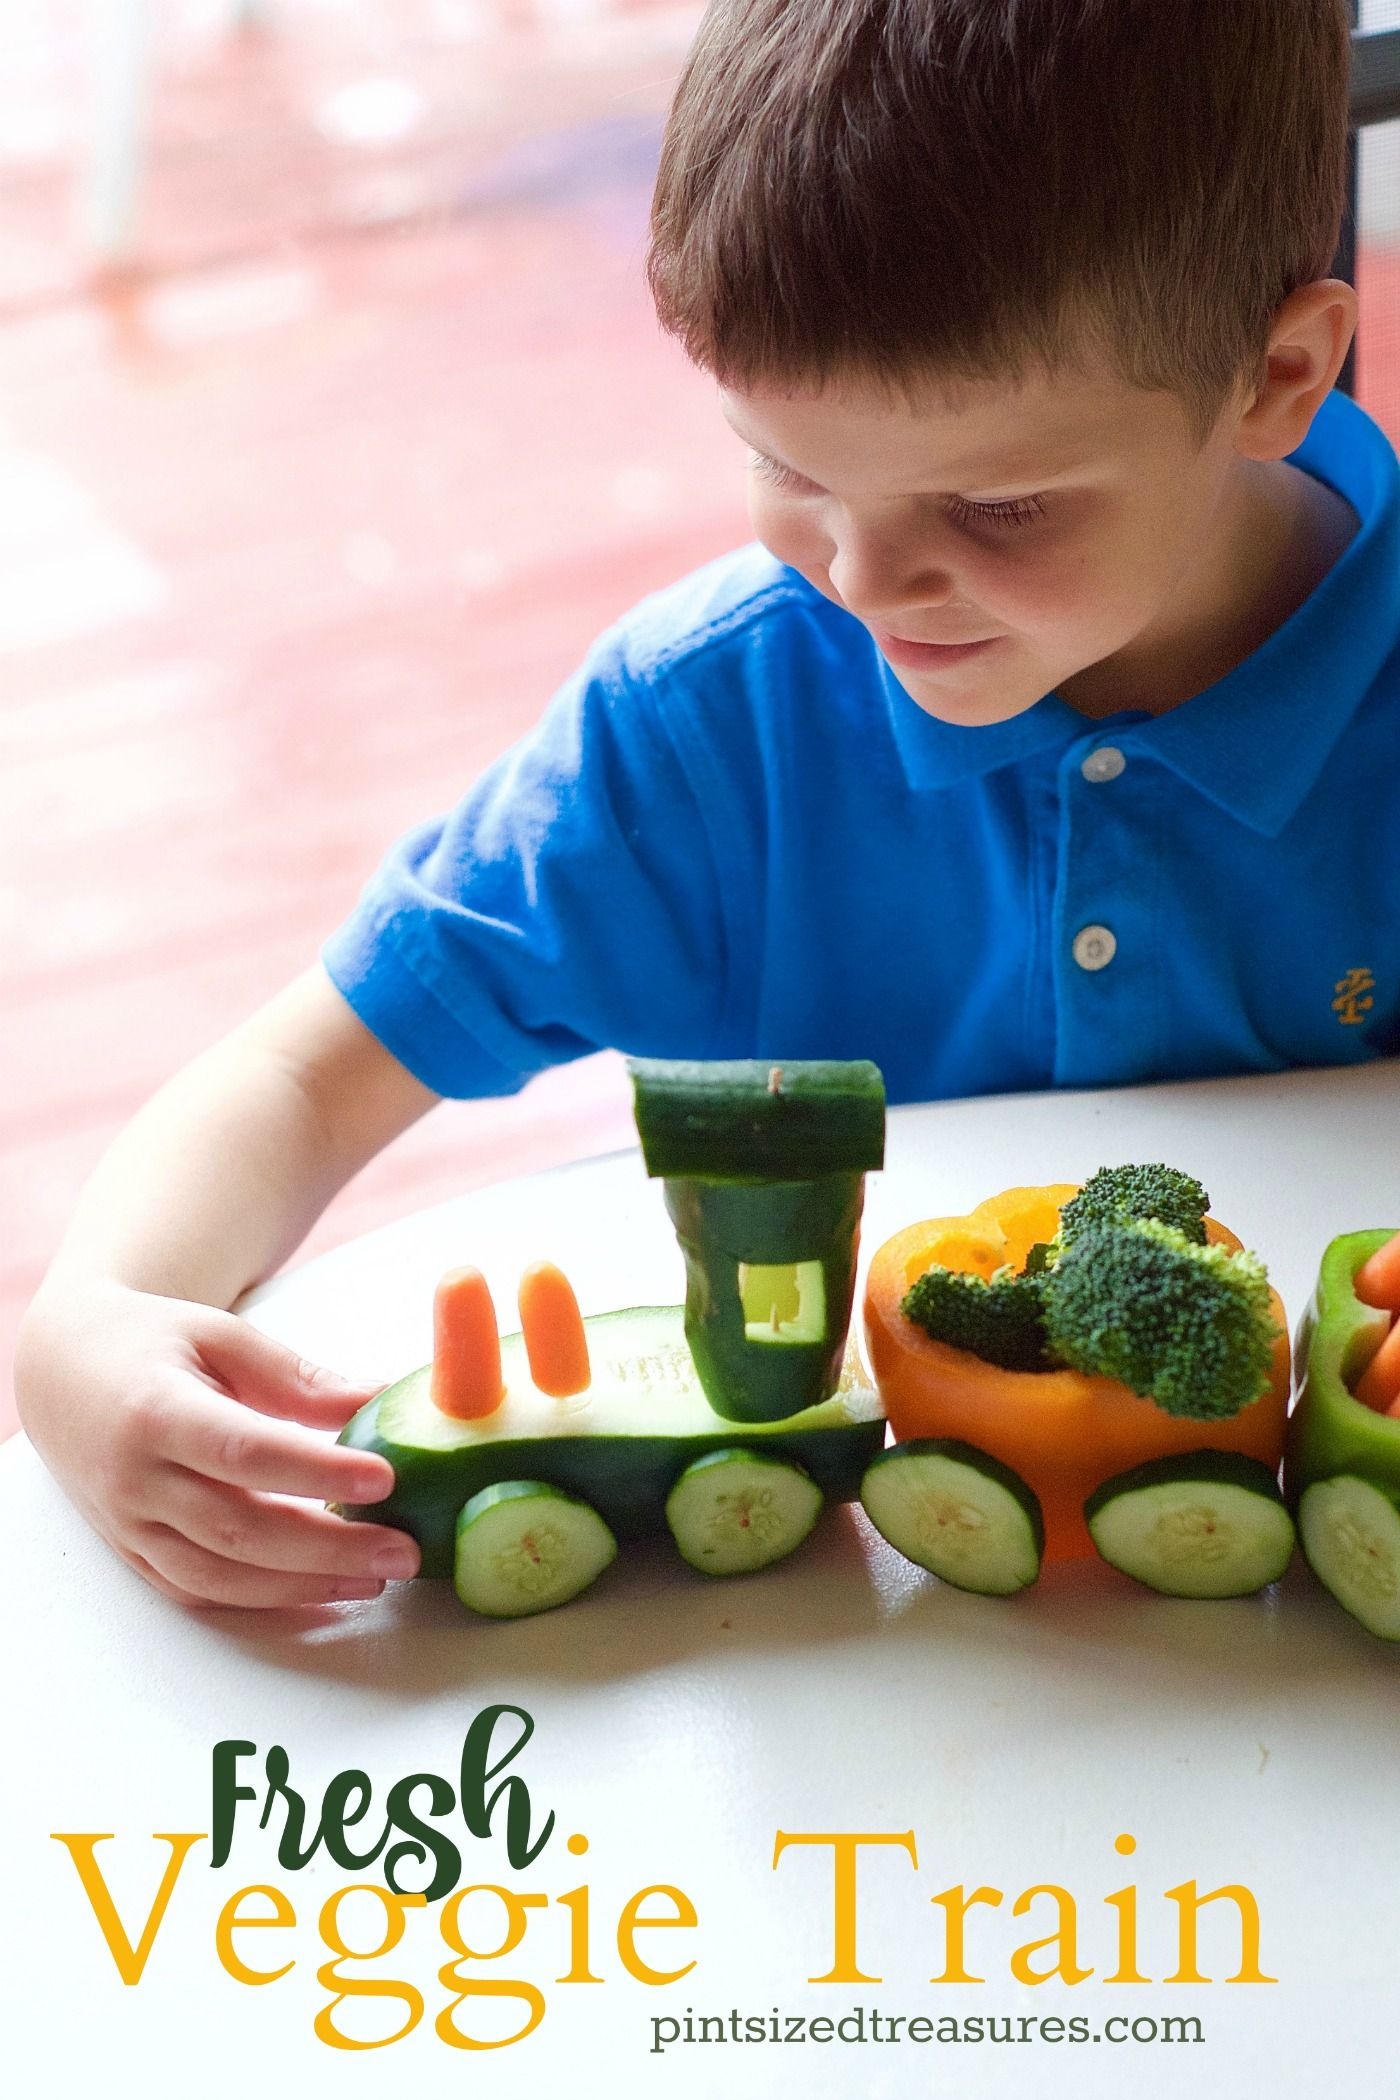 A fun, innovative, super-cute way for kids to eat their veggies! Take